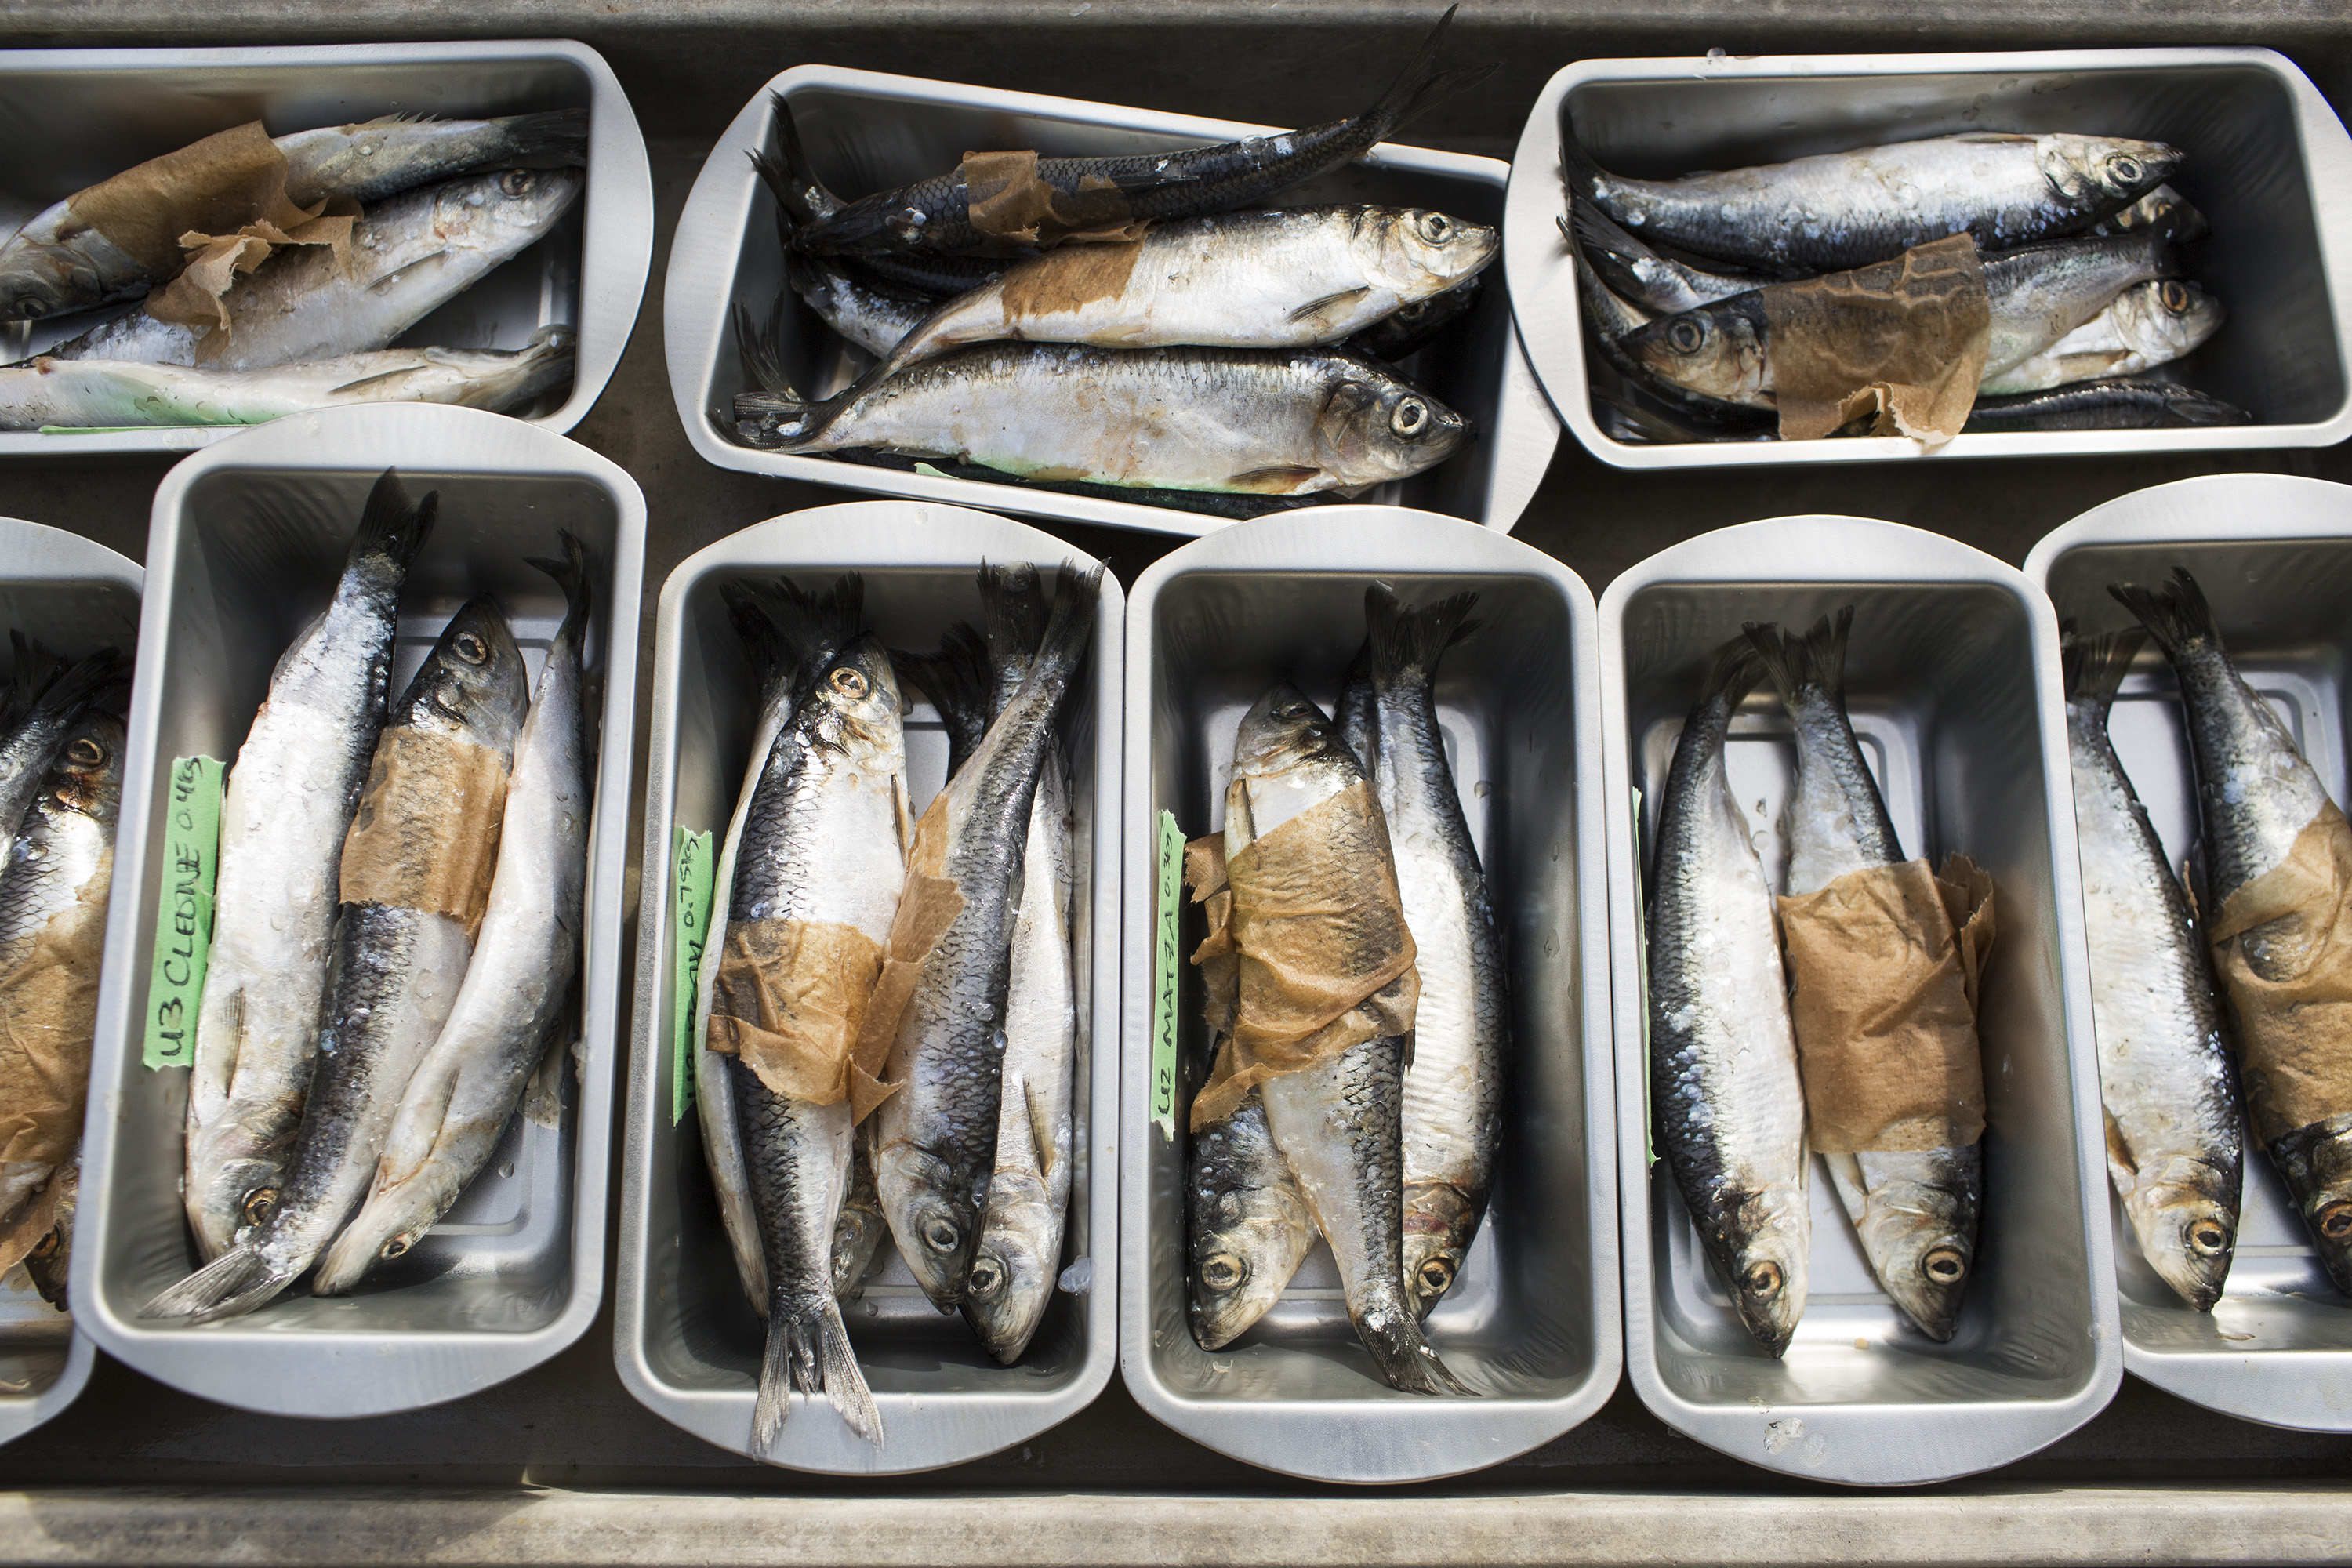 Herring breakfasts are organized and labeled for each seal and sea lion at the Marine Mammal Center in Marin County, Calif. on May 9, 2014.